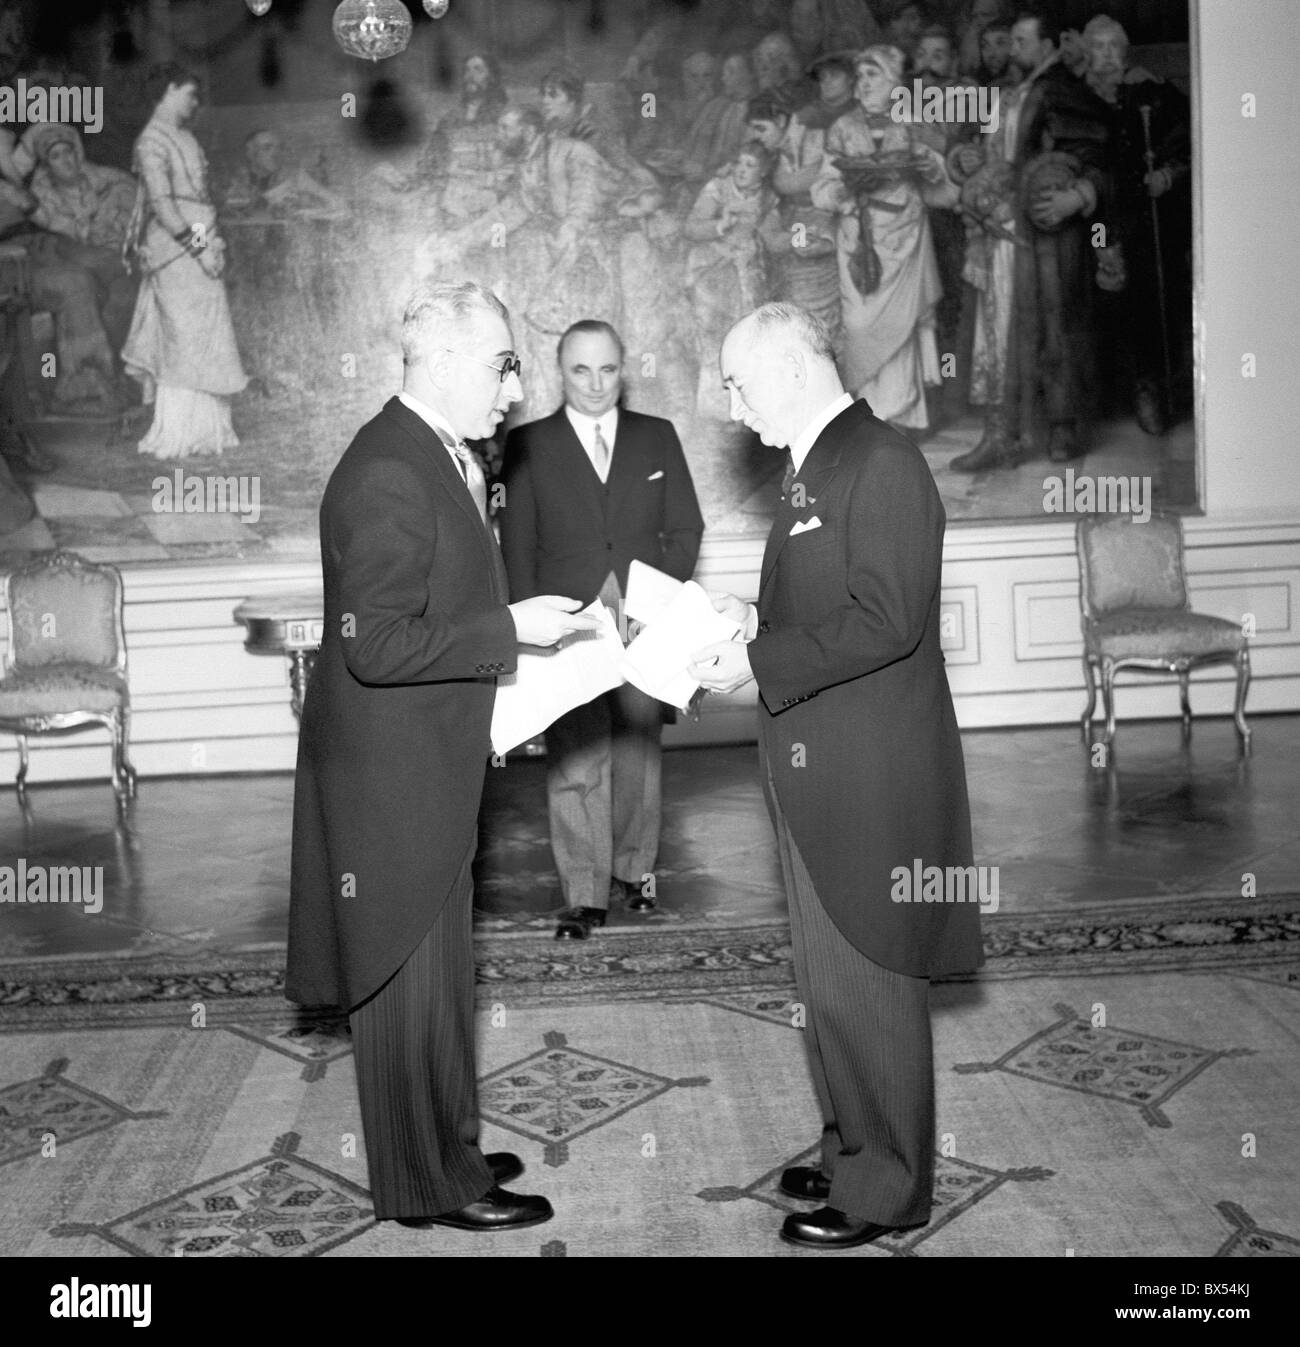 Polish ambassador Stepan Wierblowski left gives the letters of credence to Czechoslovak President Edvard Benes in - Stock Image